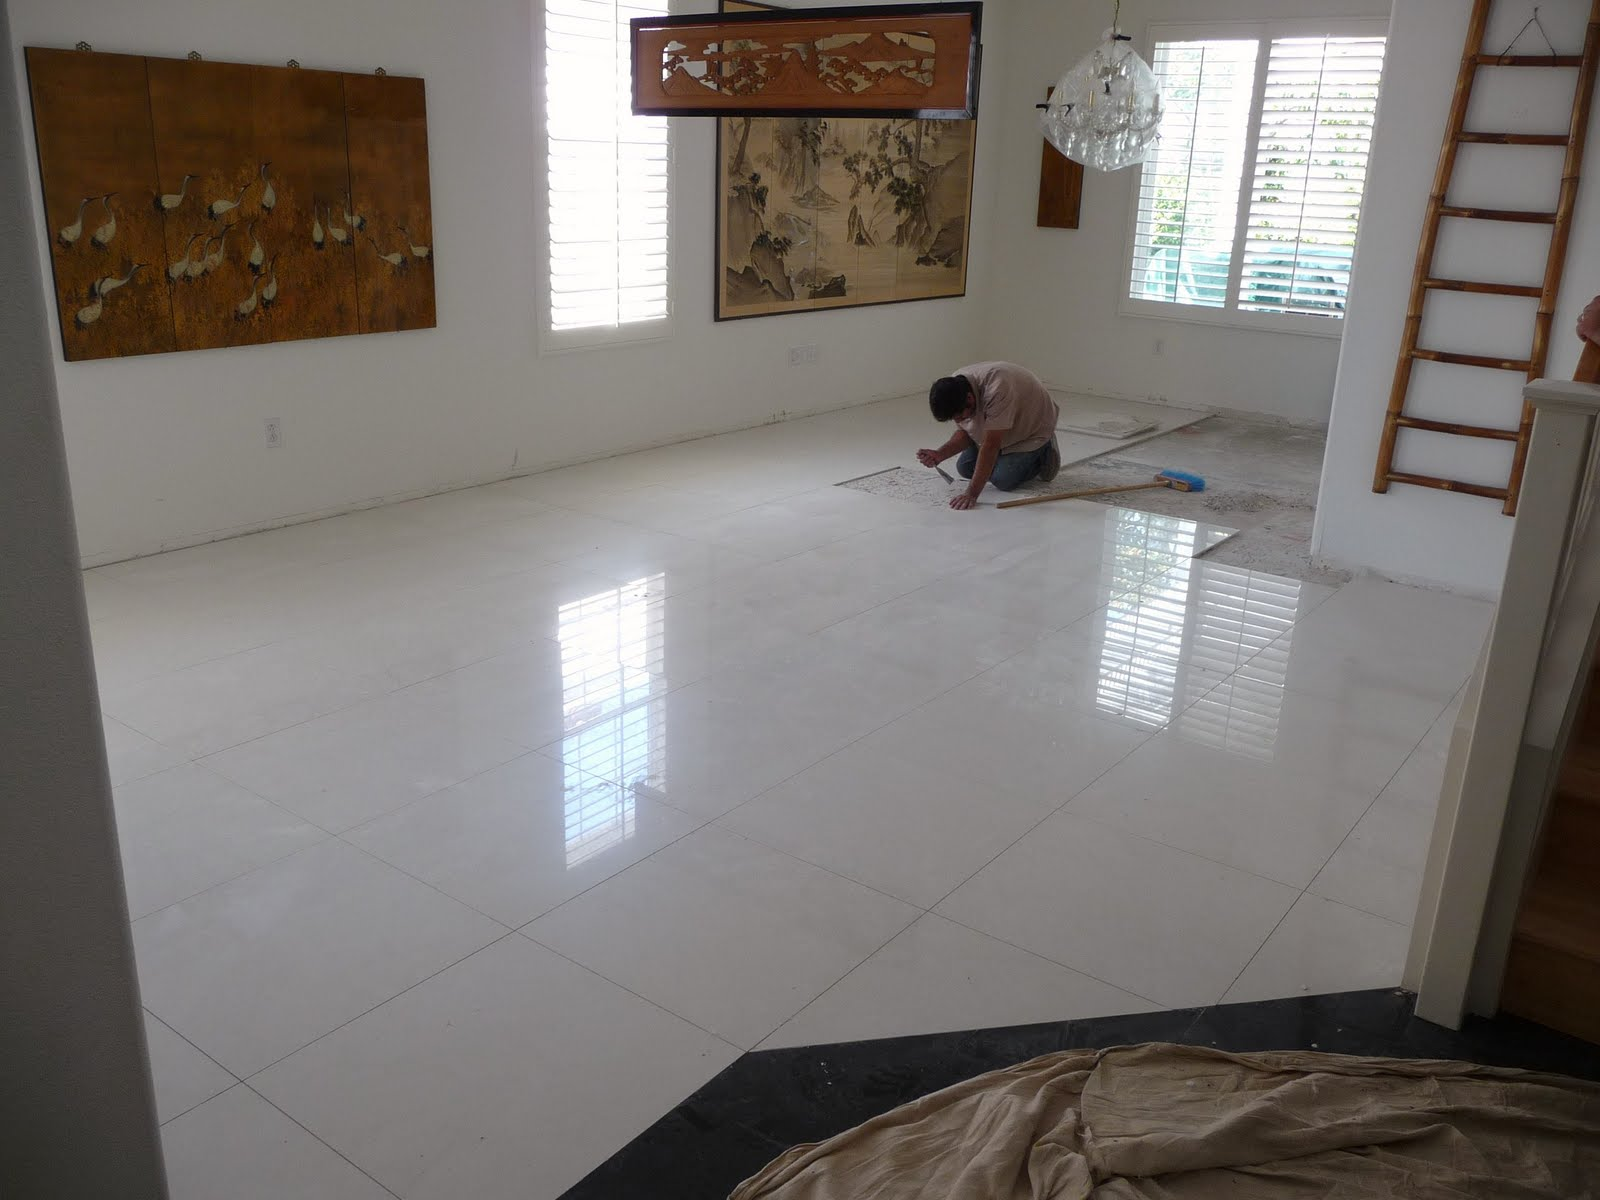 Thb Construction Updating Old Floor Tile With 2ft X 2ft Granite Tiles